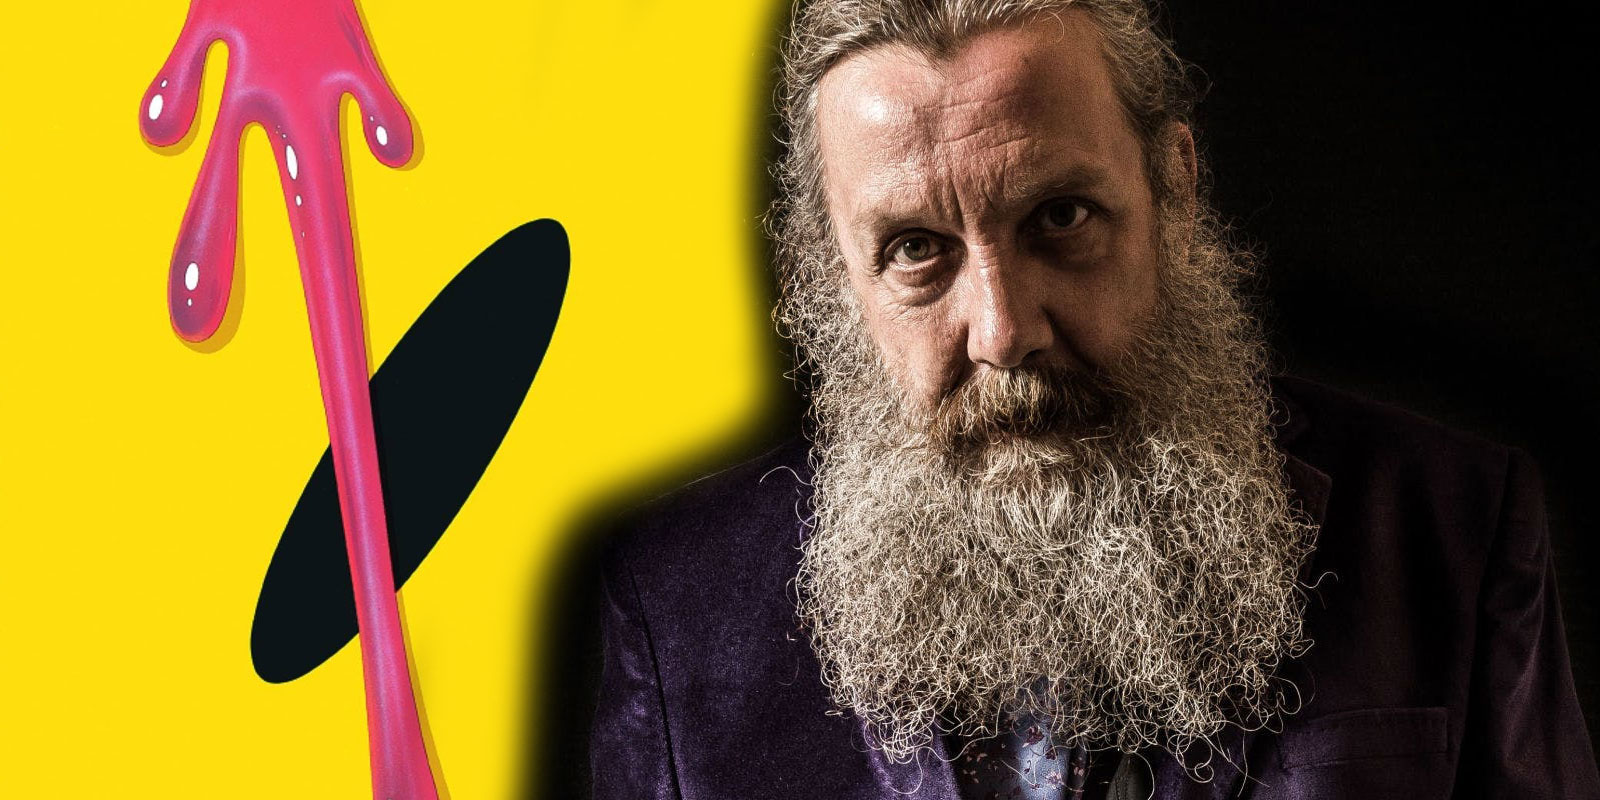 watchmen by alan moore essays The culturally constituted gaze: fetishizing the feminine from alan moore and dave gibbons's watchmen to zack snyder's watchmen.